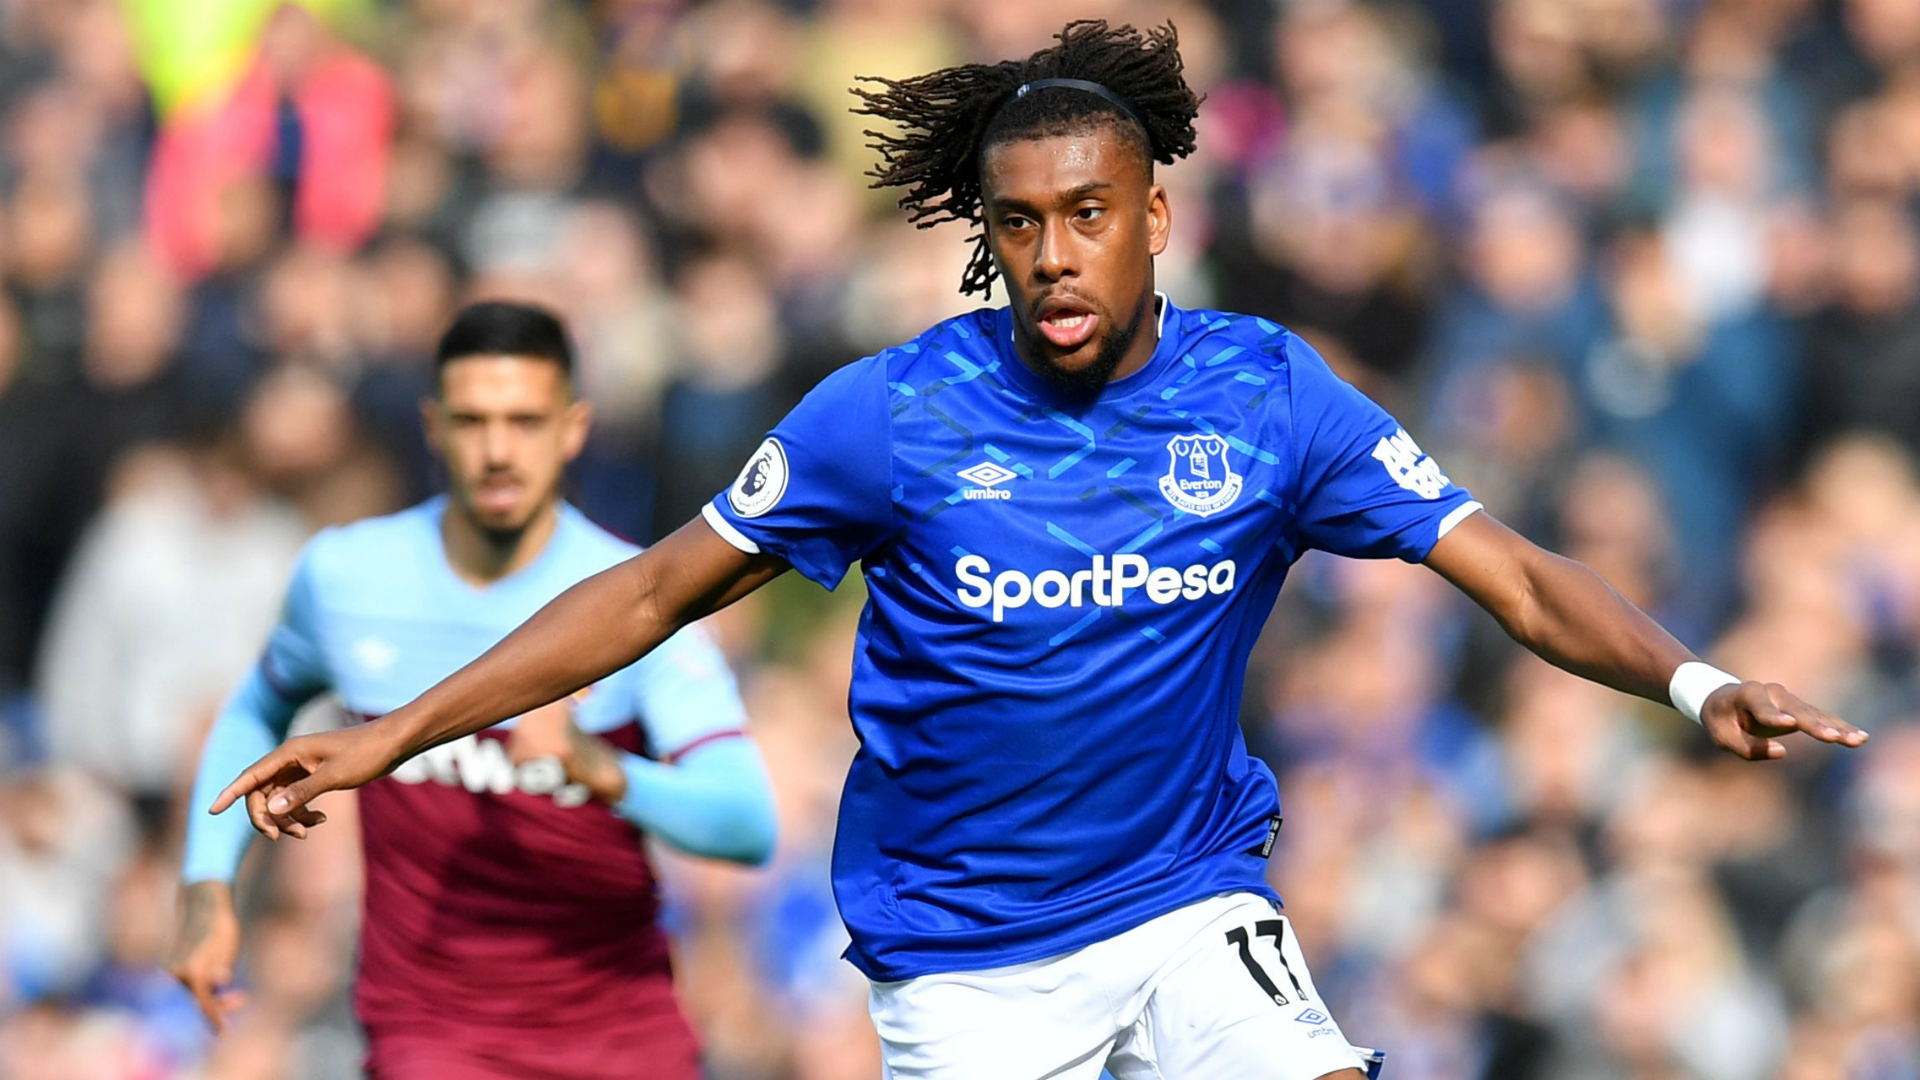 Iwobi Wants Everton's Playmaker's Role Against Arsenal On Sunday